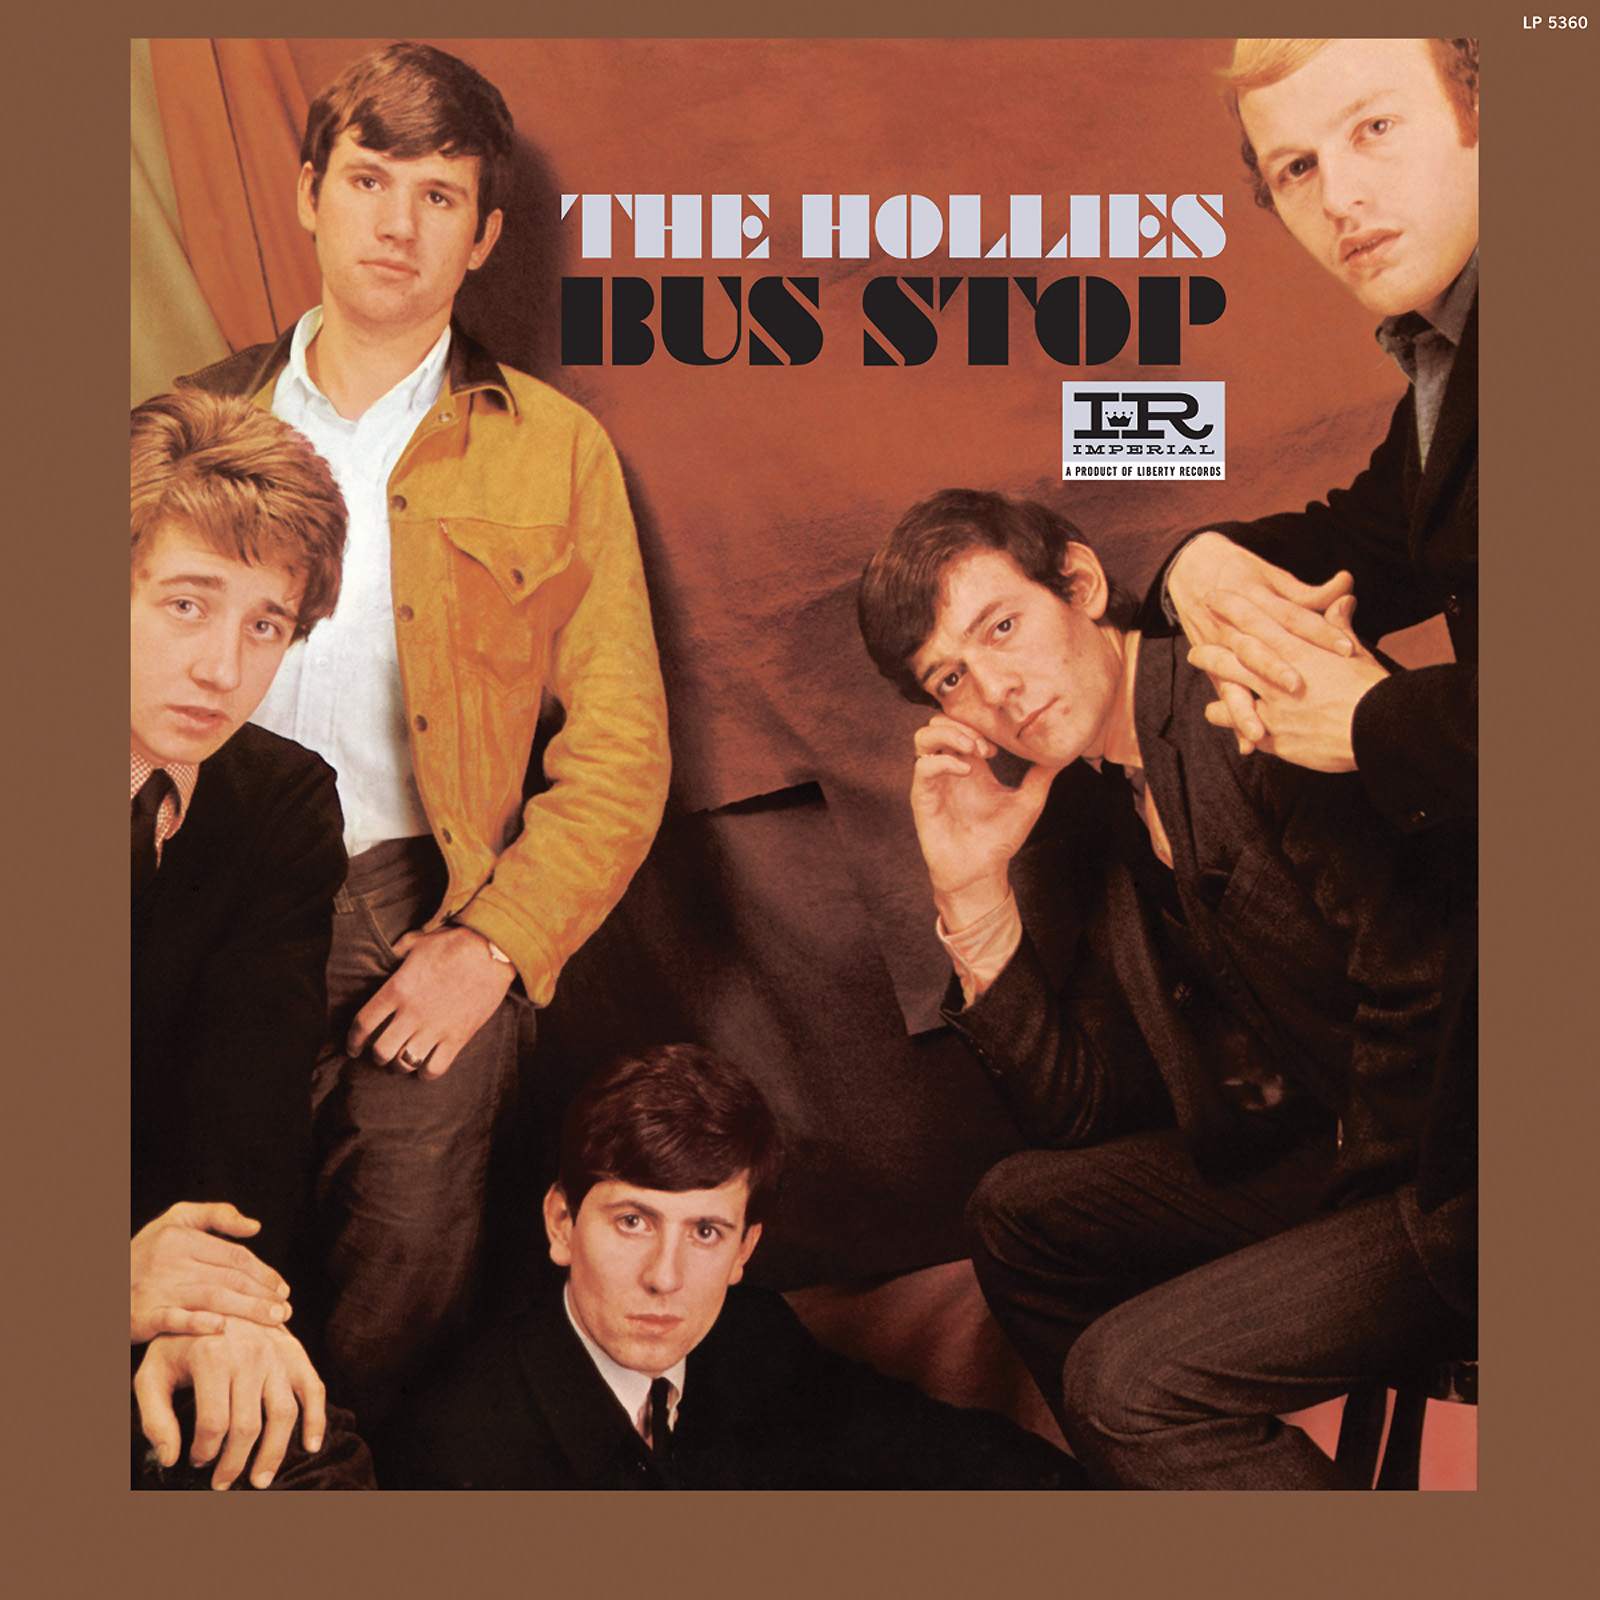 Hollies, The - Bus Stop MONO Edition LP